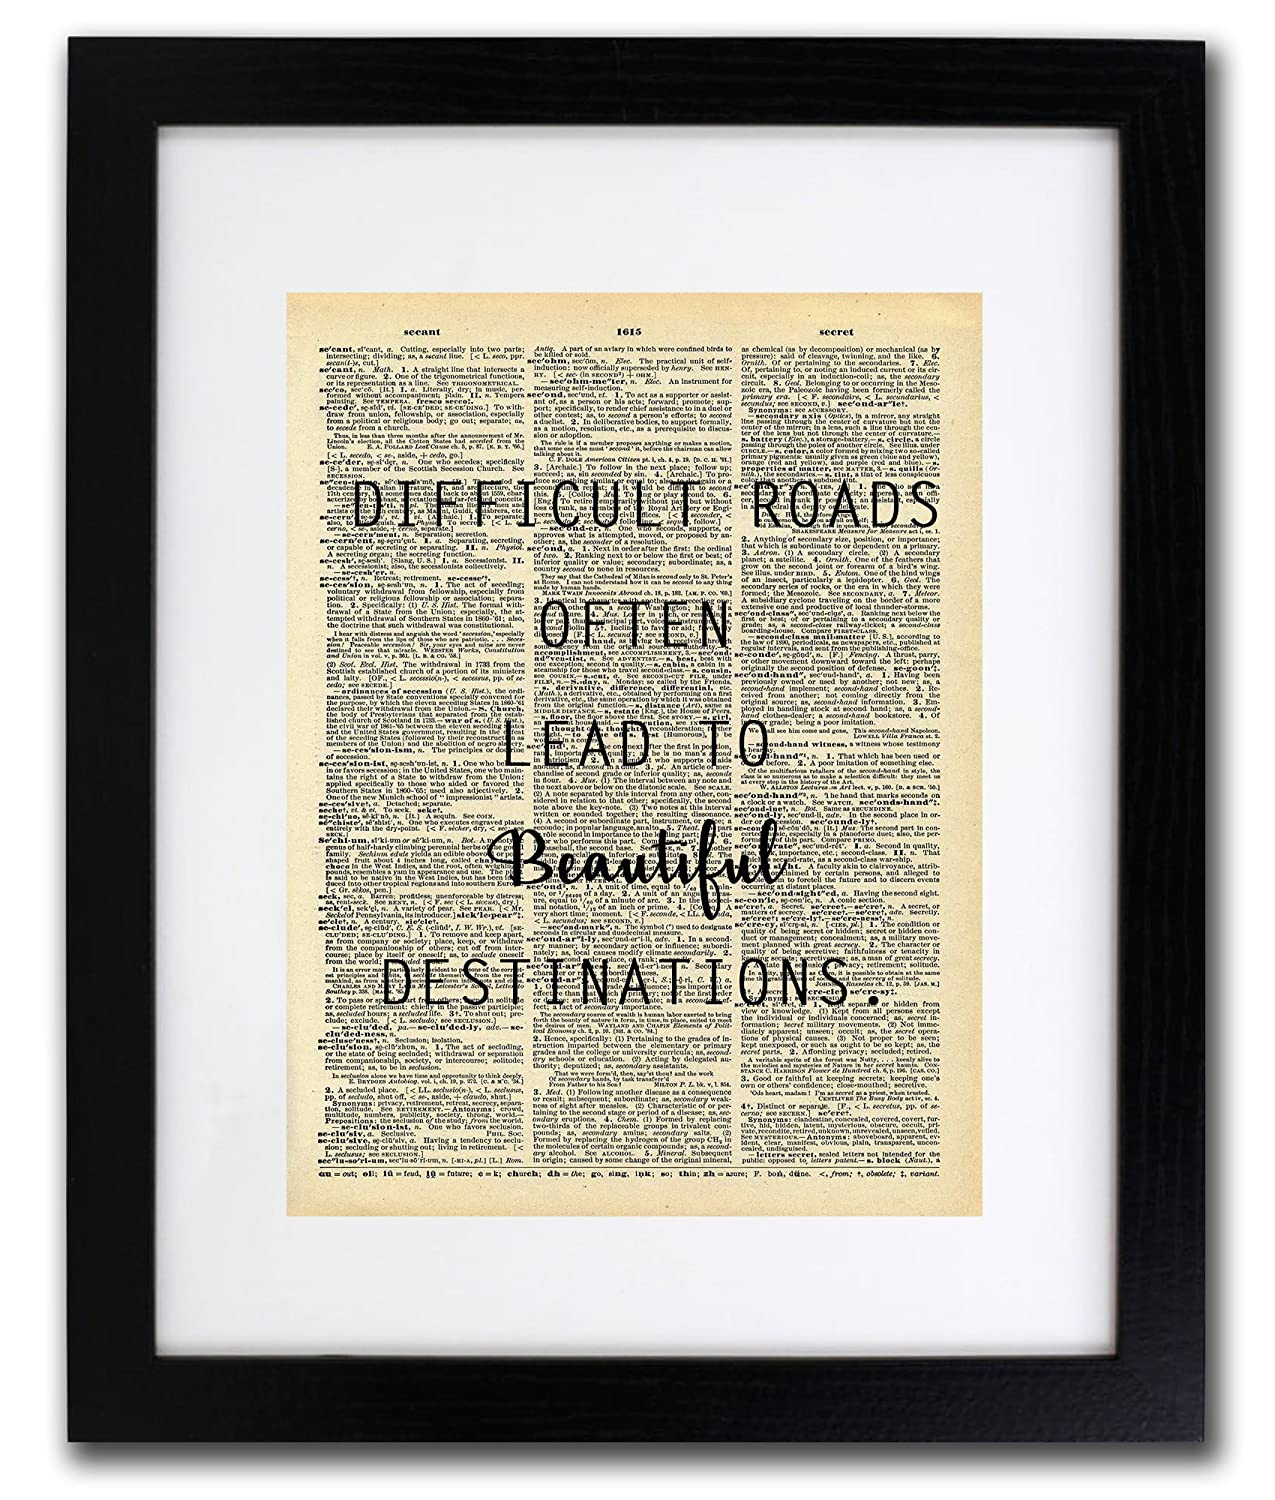 Difficult Roads Quote Dictionary Art Print - Vintage Dictionary Print 8x10 inch Home Vintage Art Wall Art for Home Decor Wall Decorations For Living Room Bedroom Office Ready-to-Frame